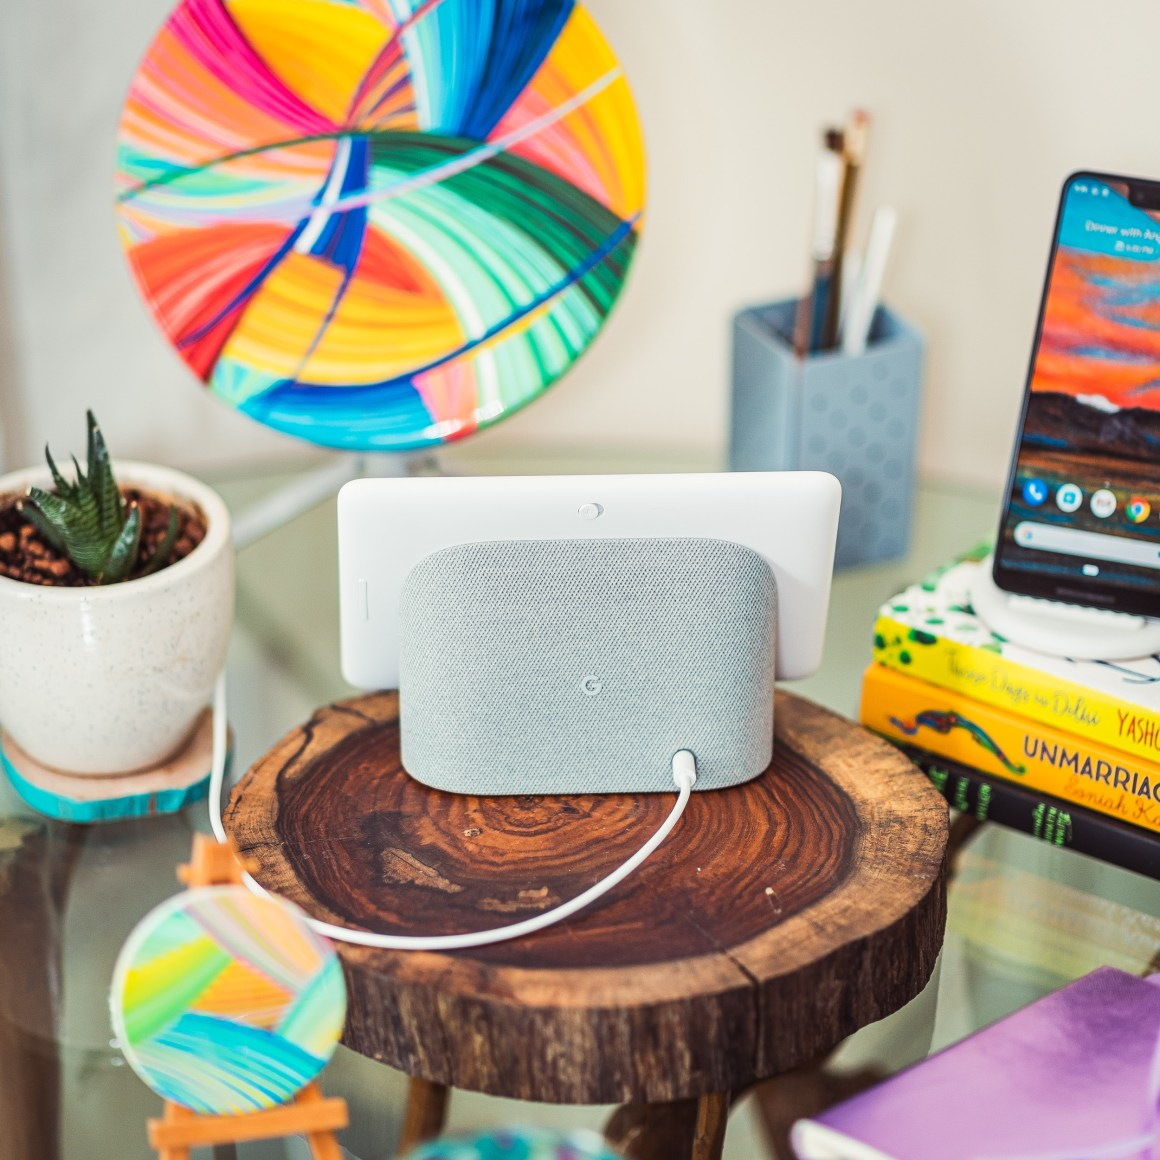 google nest hub, google nest hub india, google india, naina.co, naina redhu, nainaxgoogle, home automation, photo frame, youtube music, google assistant, voice command, google speaker, central home command, artificial intelligence, AI, photographer, blogger, eyesfortechnology, professional photographer, professional blogger, googlenesthub, madebygoogle